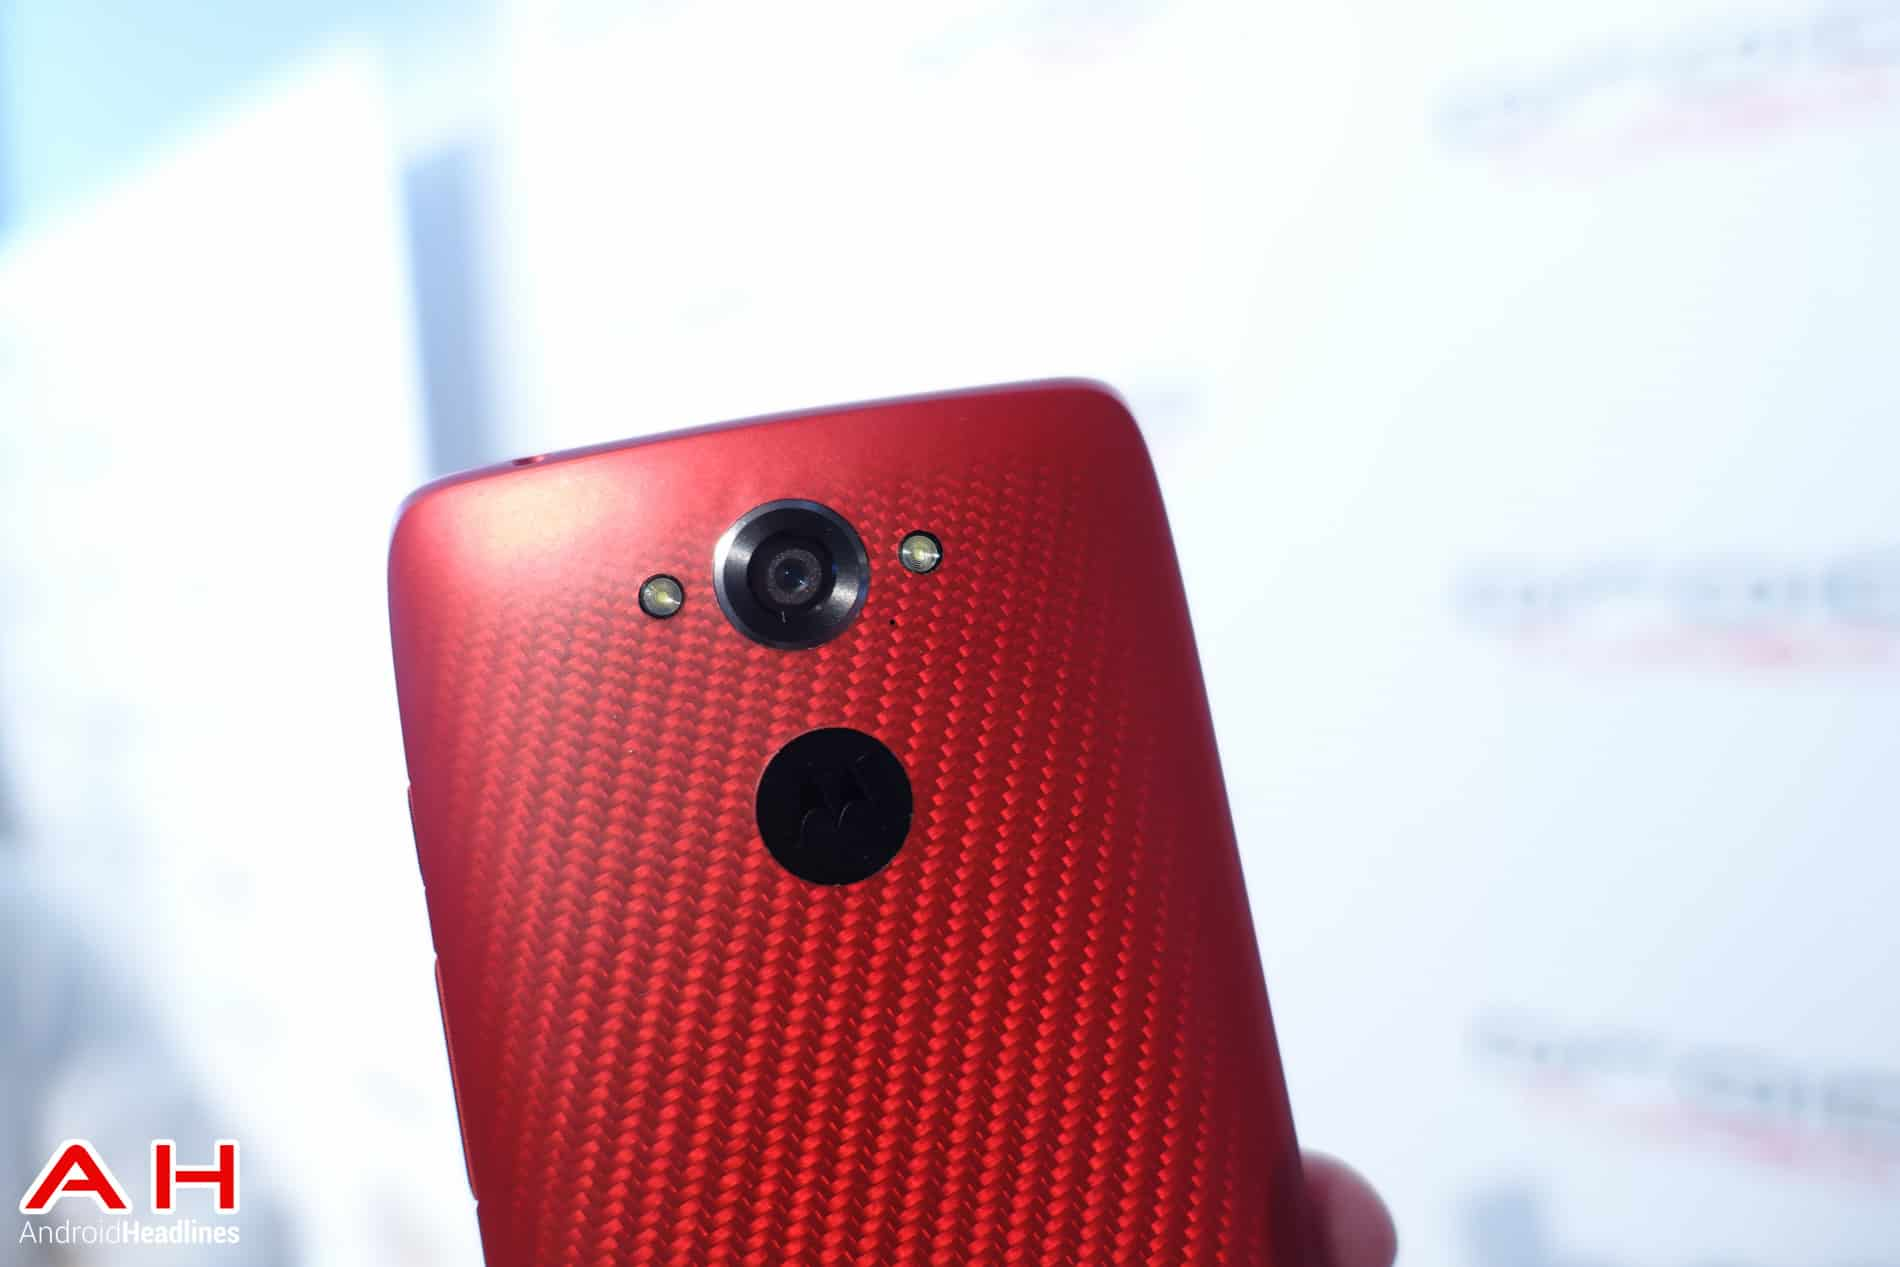 Motorola droid turbo does have qi wireless charging